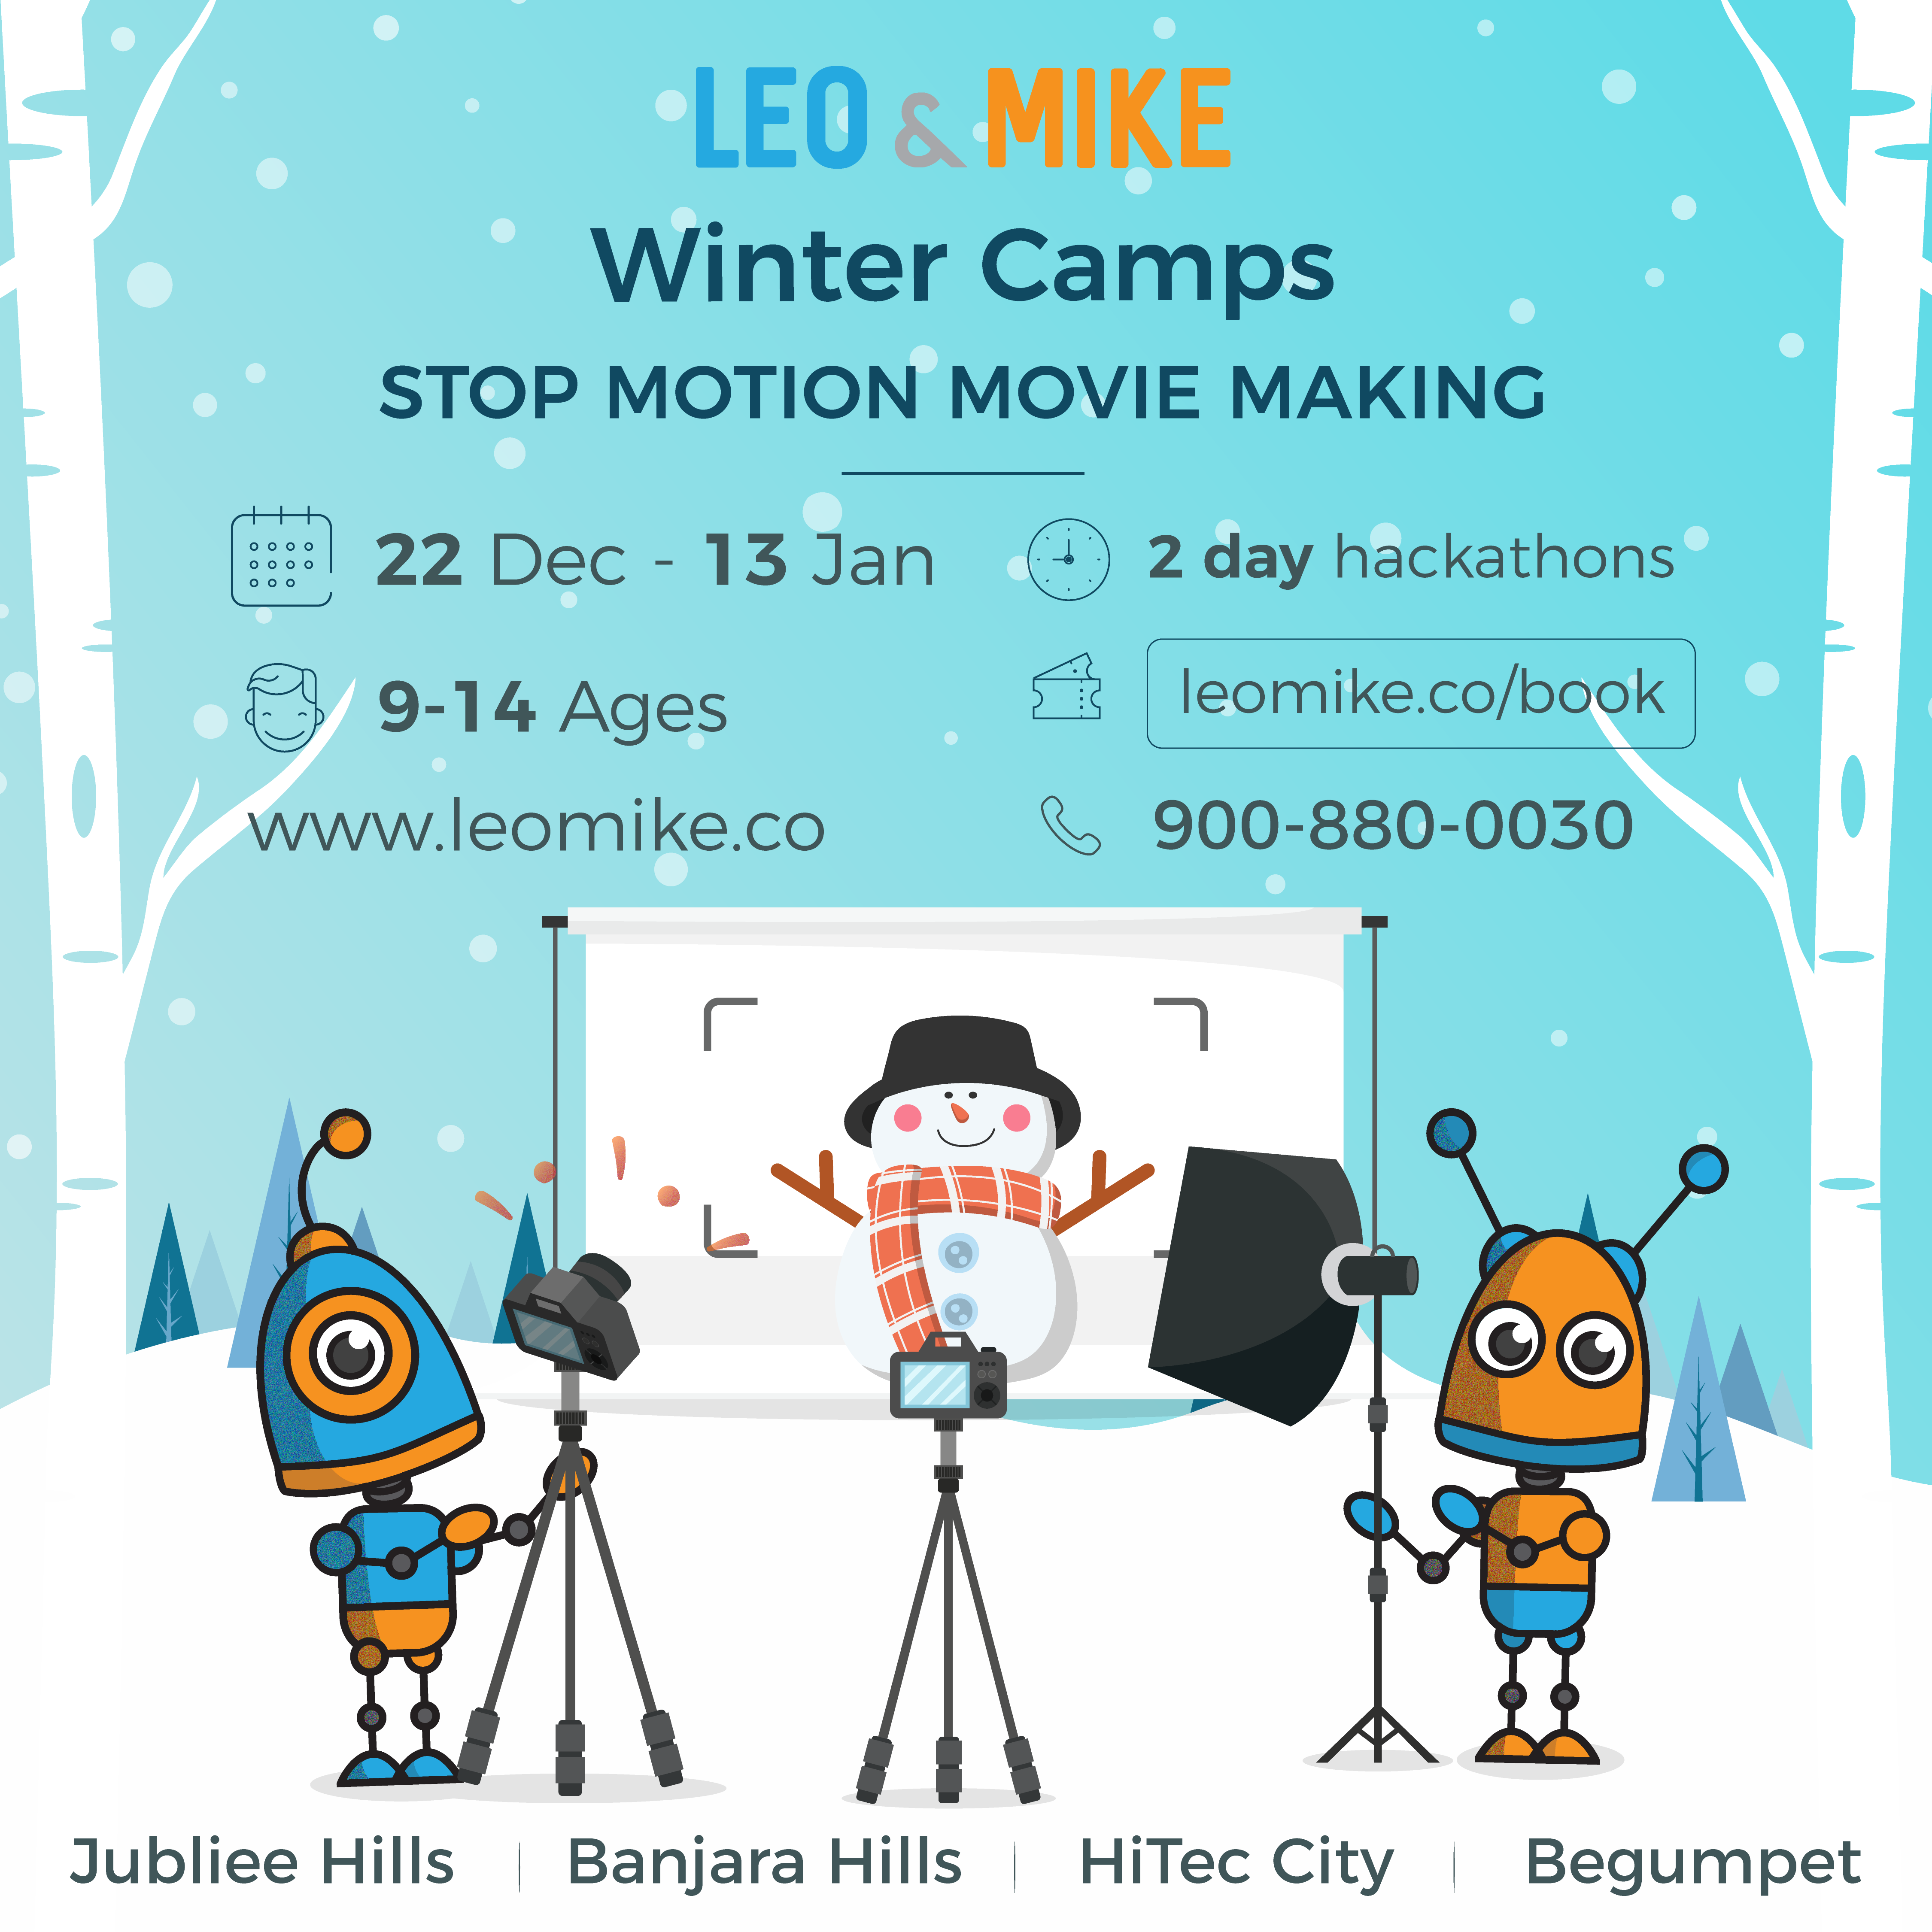 Stop motion movie making for 9-14 years old @ Jxtapose